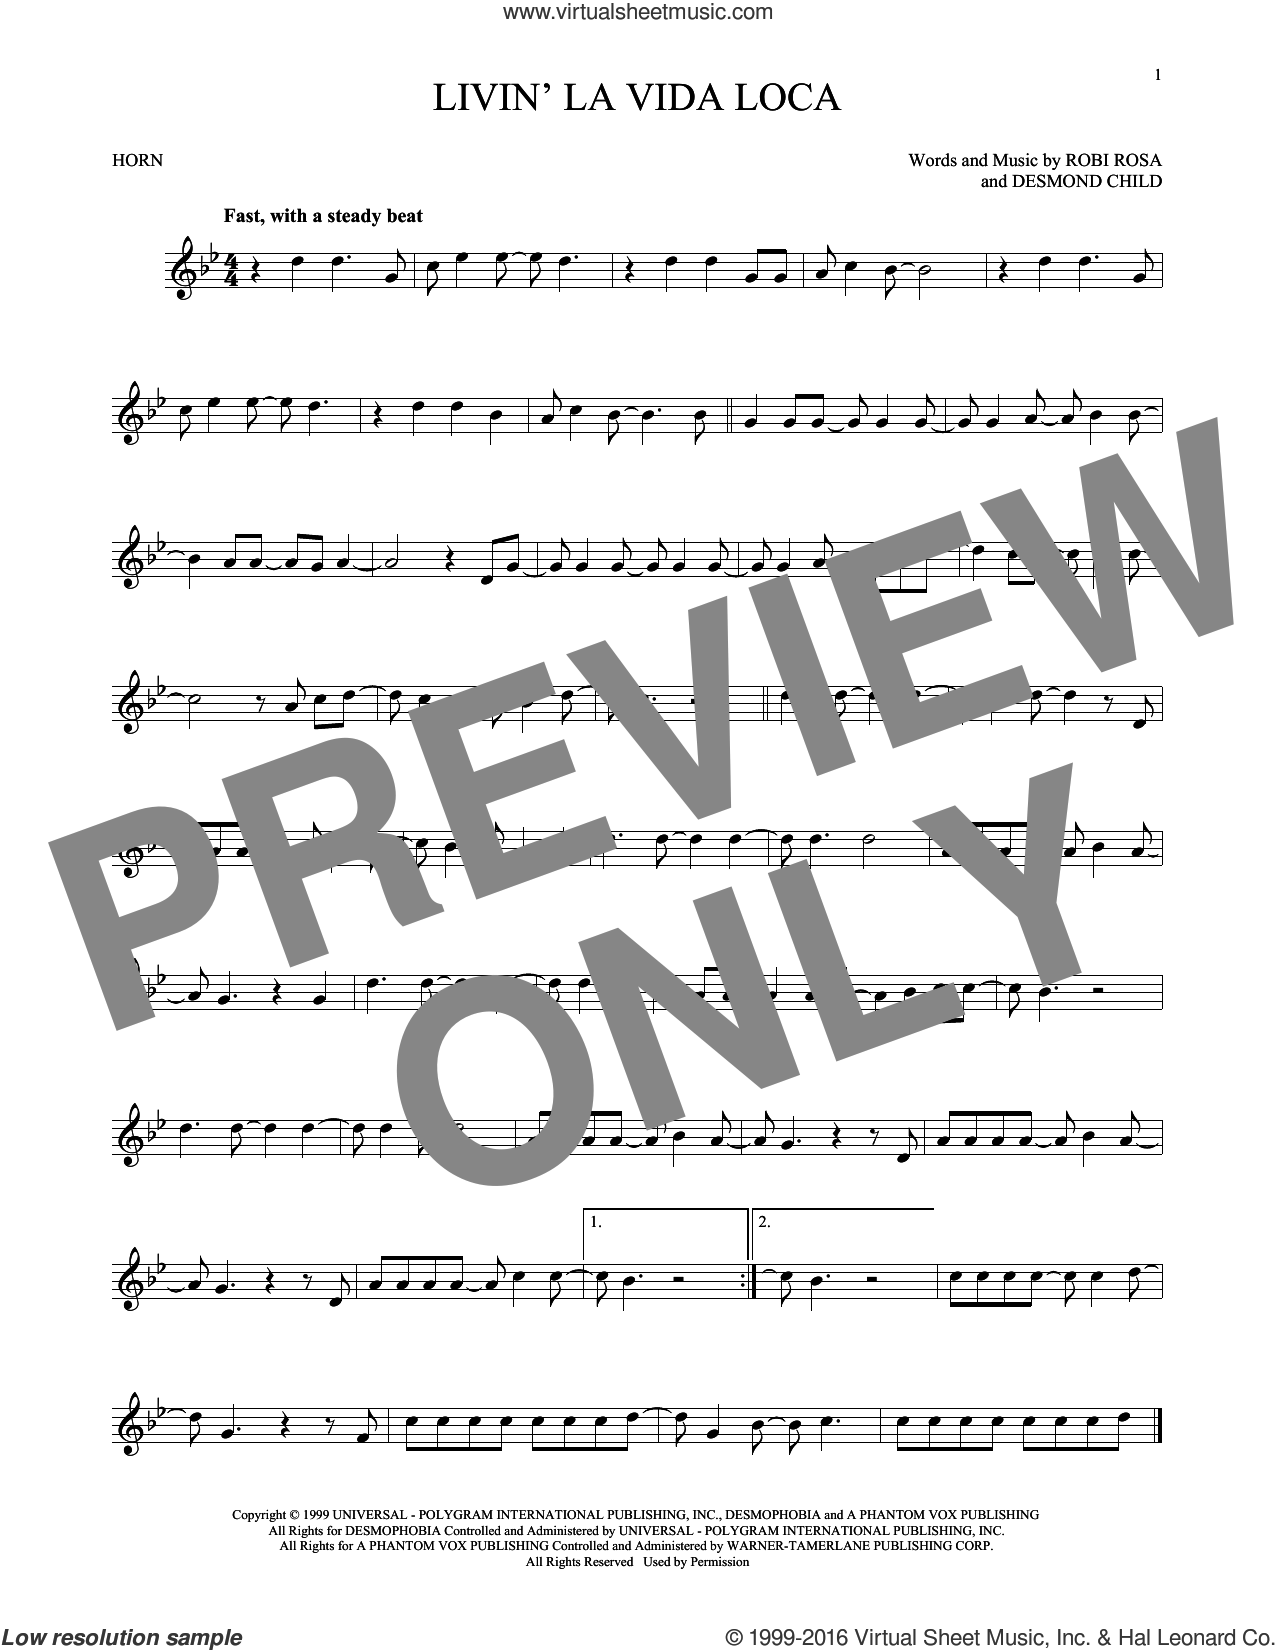 Livin' La Vida Loca sheet music for horn solo by Ricky Martin, Desmond Child and Robi Rosa, intermediate skill level